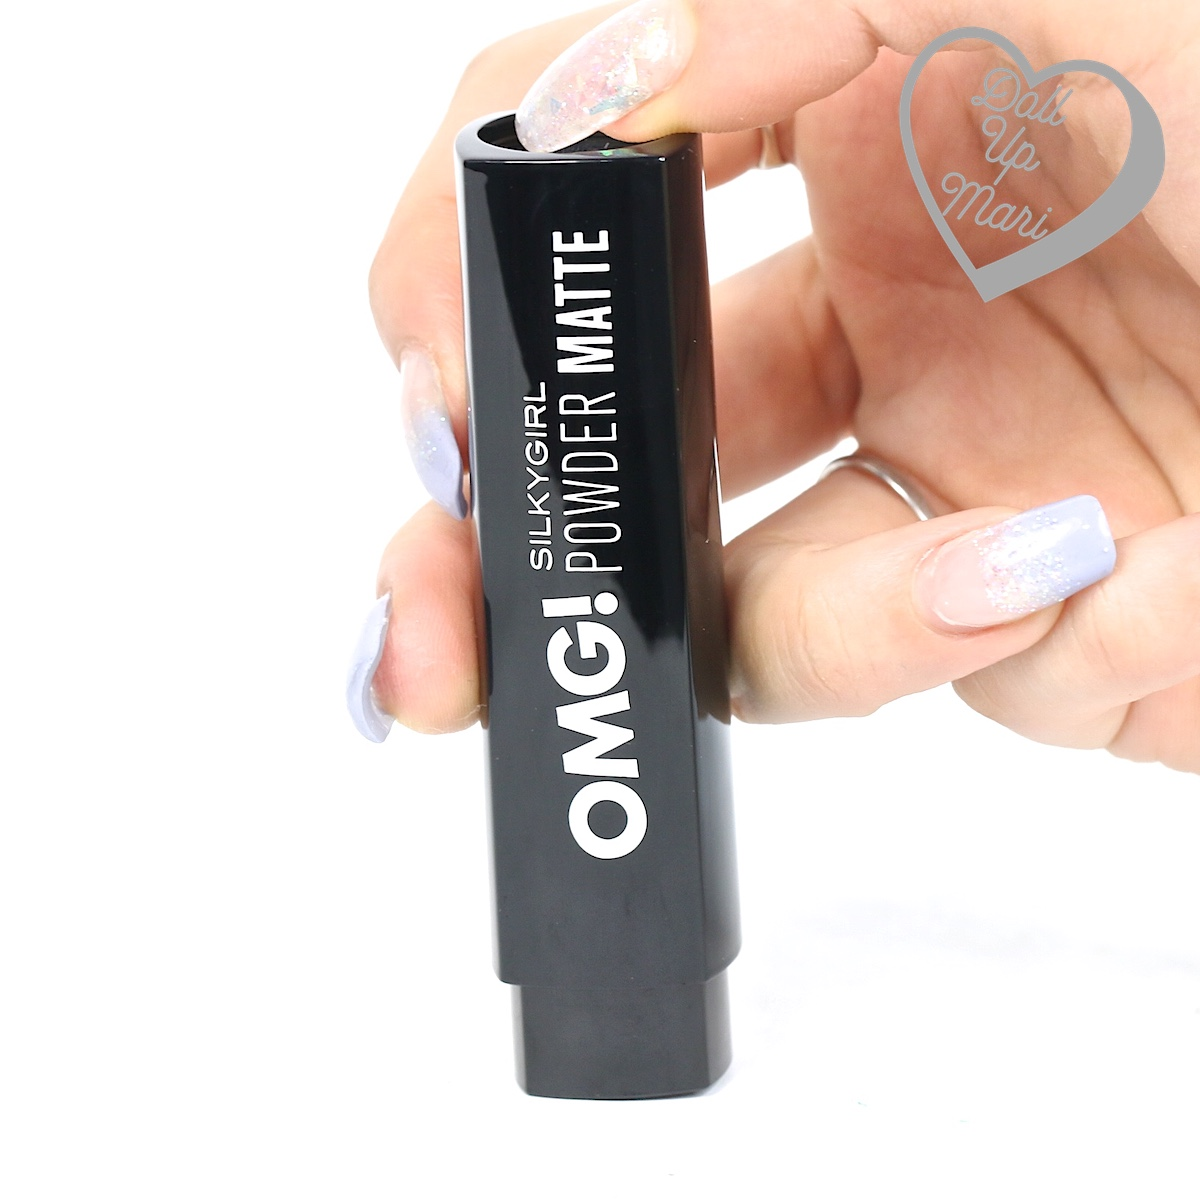 Silkygirl OMG! Powder Matte Lipcolor Lipstick casing when clicked